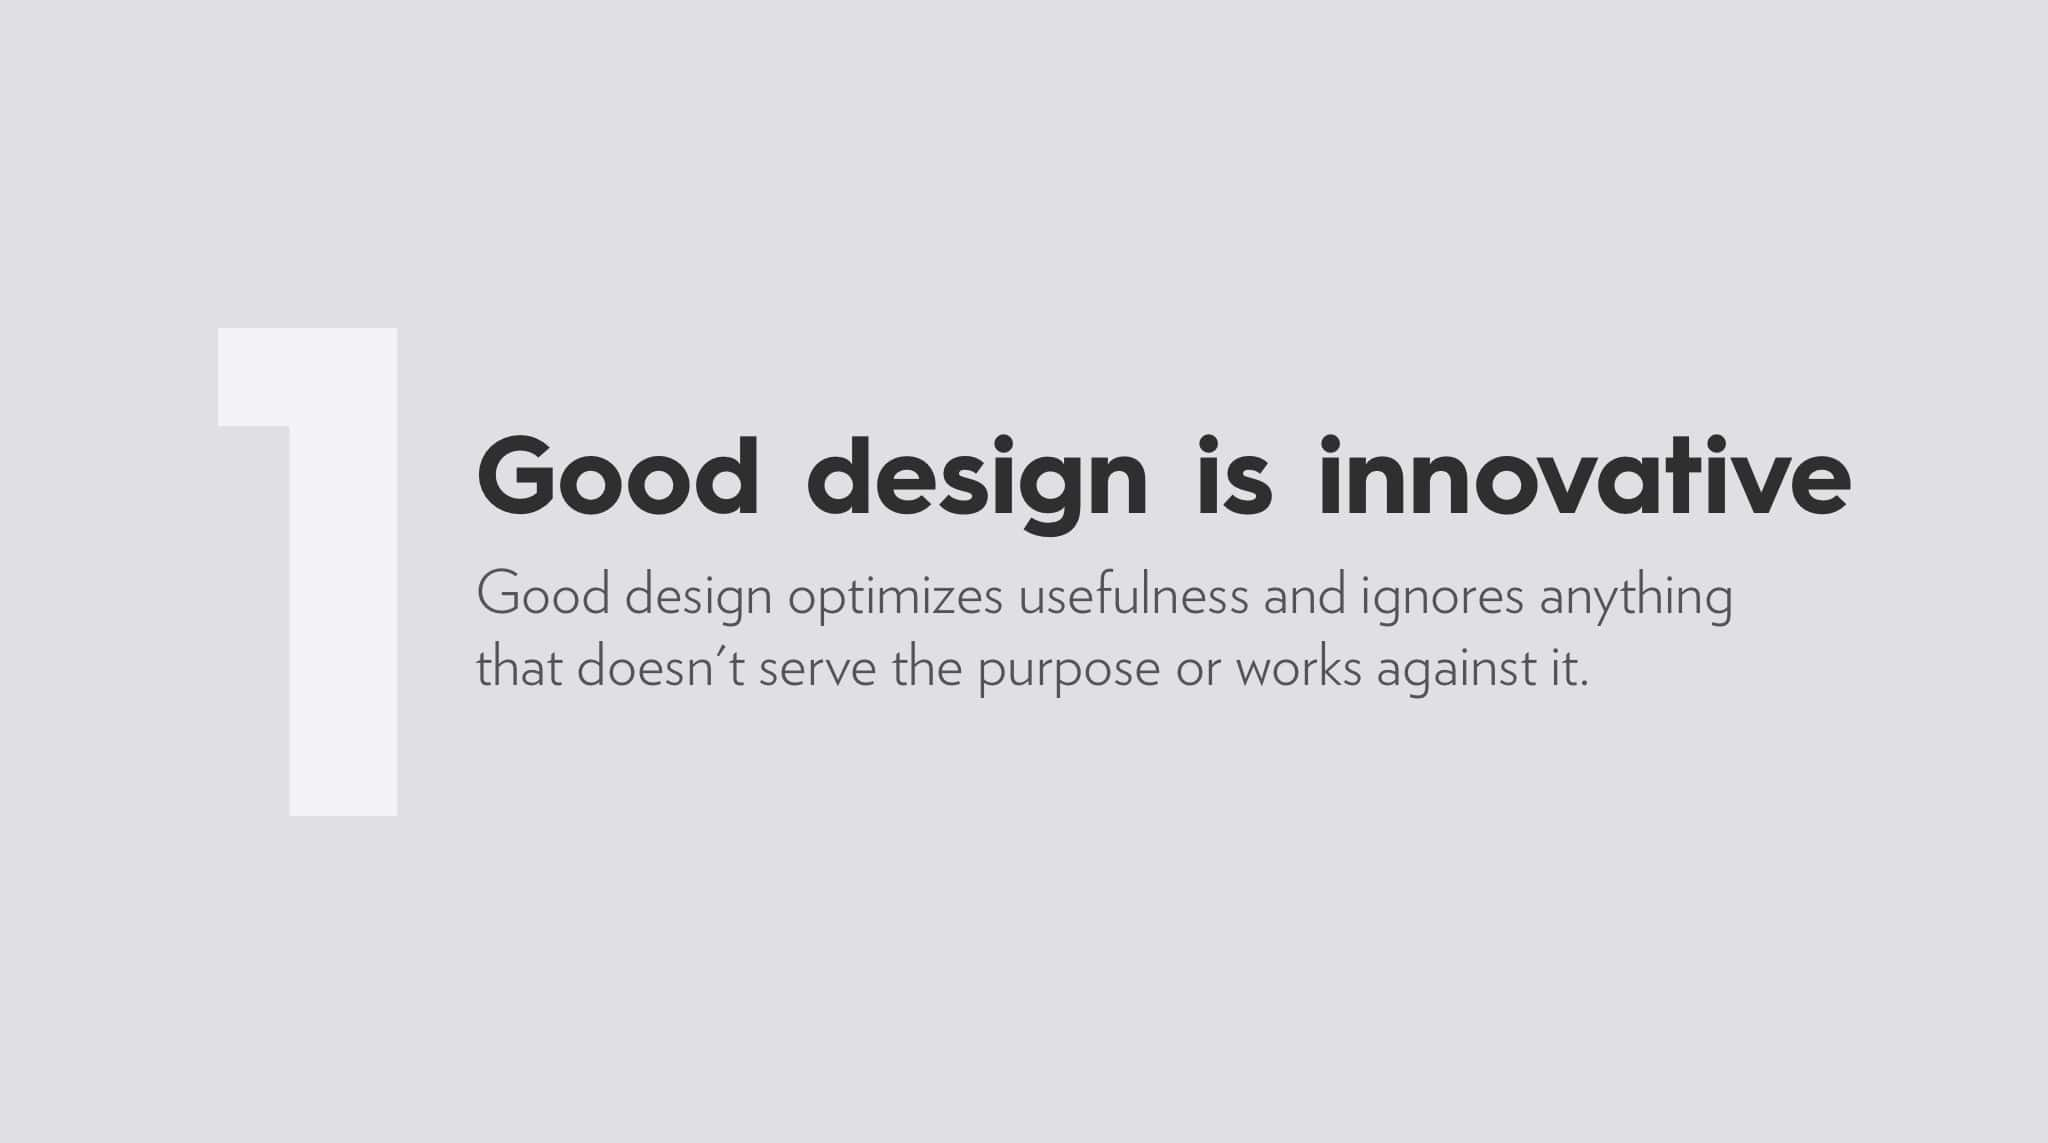 Ten Principles For Good Design by Dieter Rams, good design is innovative.